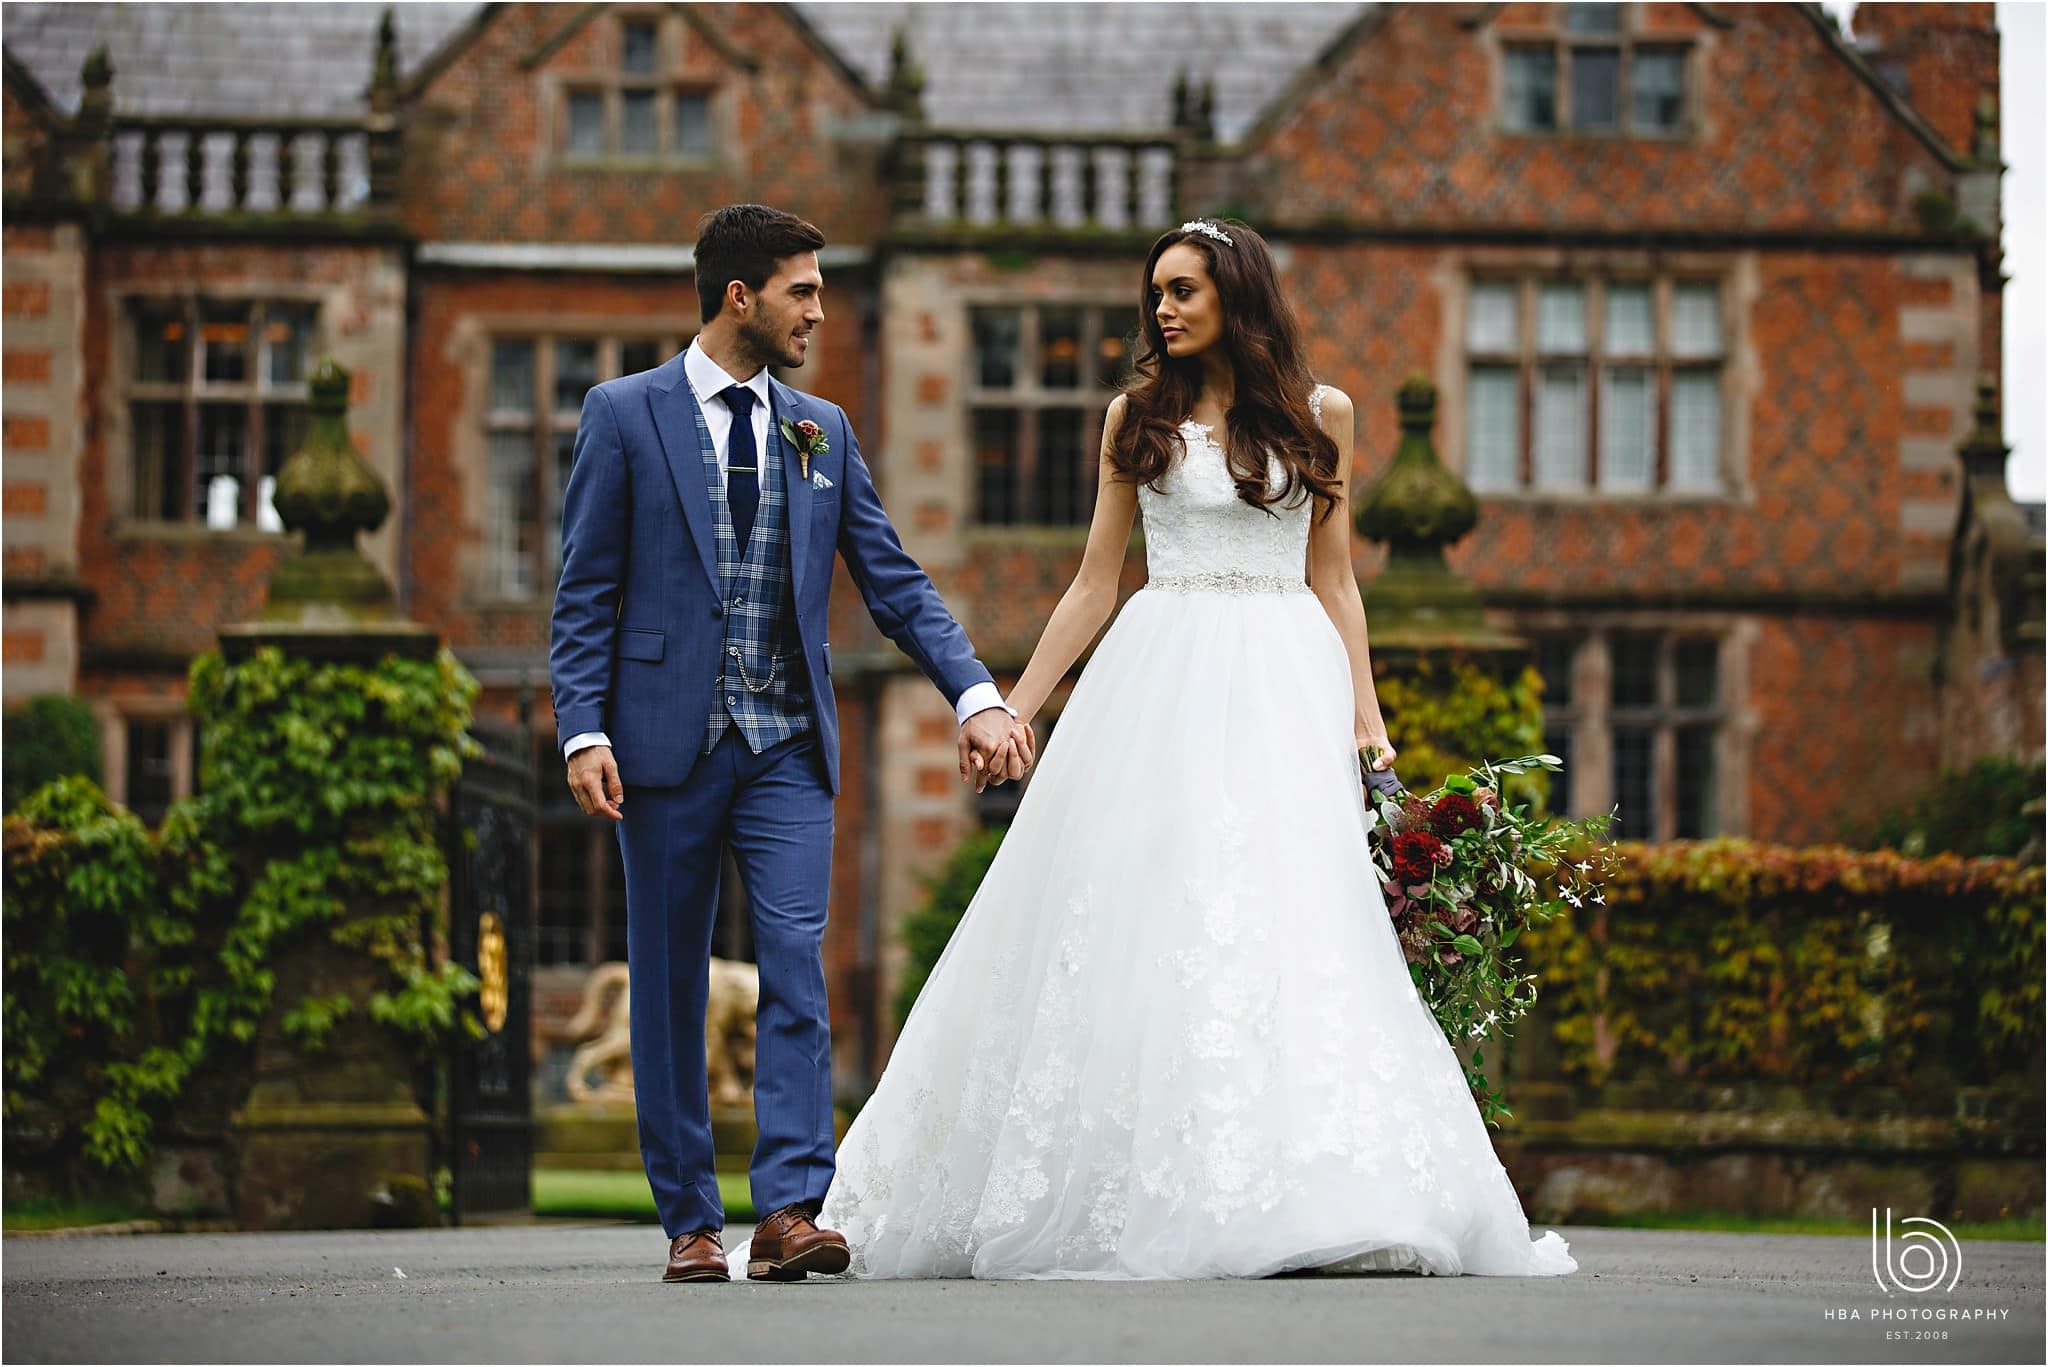 the bride and groom walking away form Dorfold Hall in Cheshire